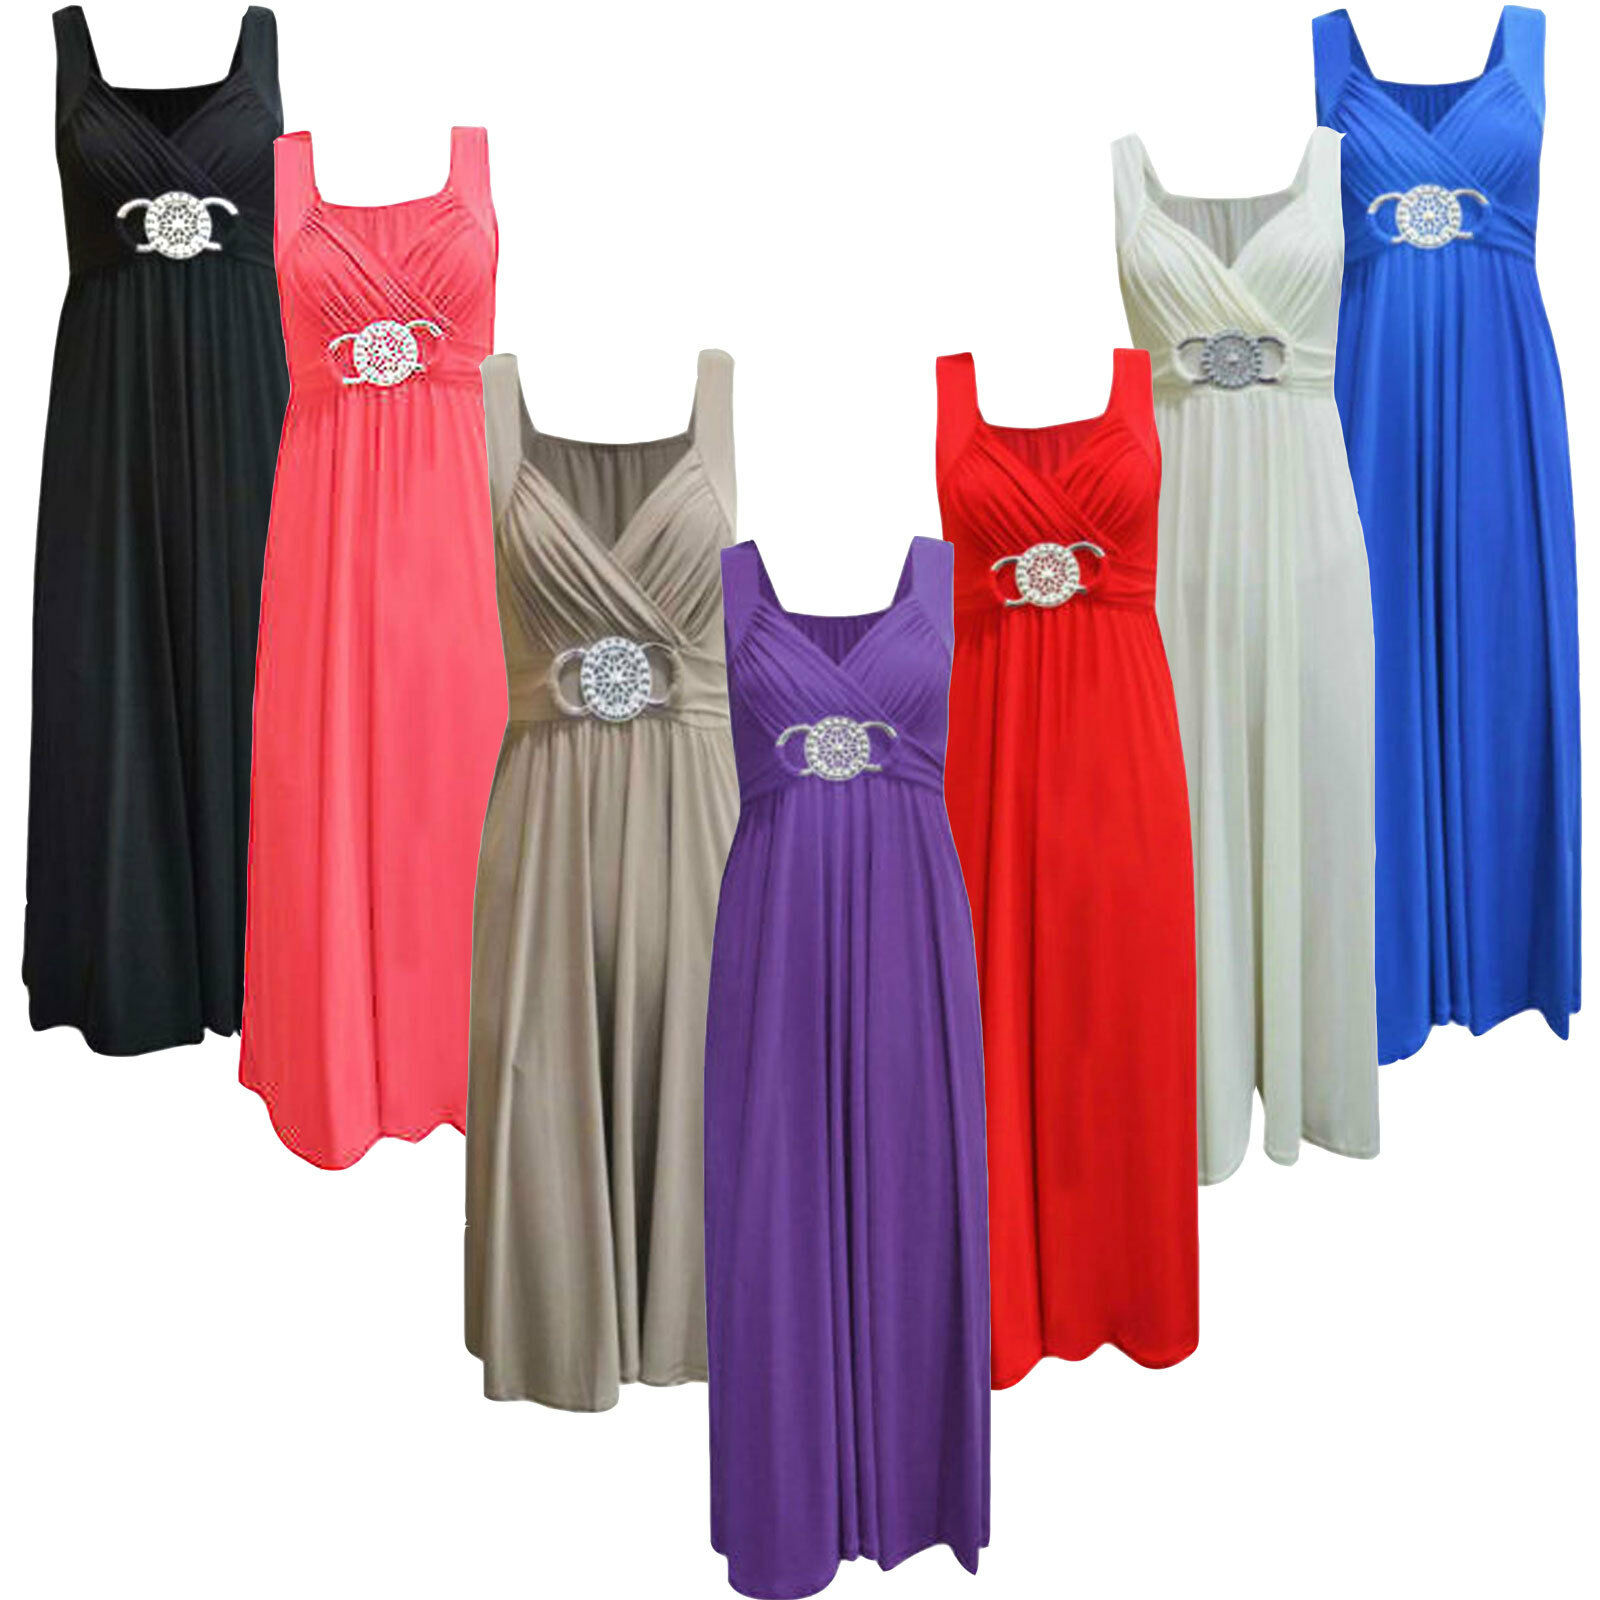 Ladies wedding guest bridesmaid sleeveless cocktail for Ebay wedding guest dresses